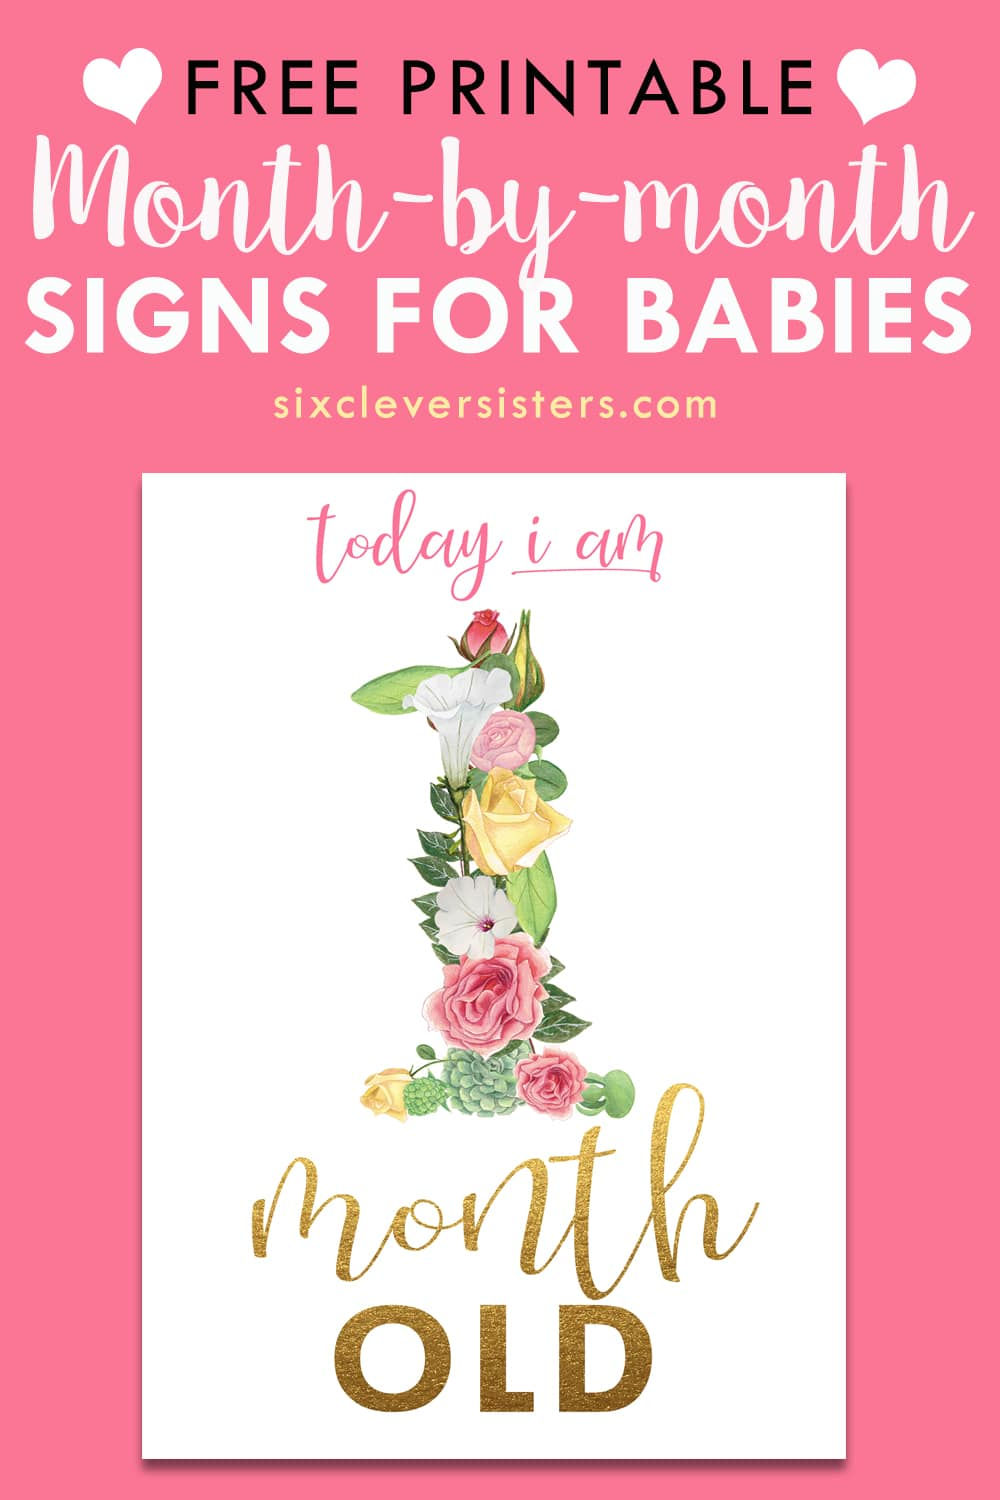 photo regarding Printable Baby Month Signs called Floral Thirty day period Signs or symptoms for Youngster Photographs - 6 Sensible Sisters